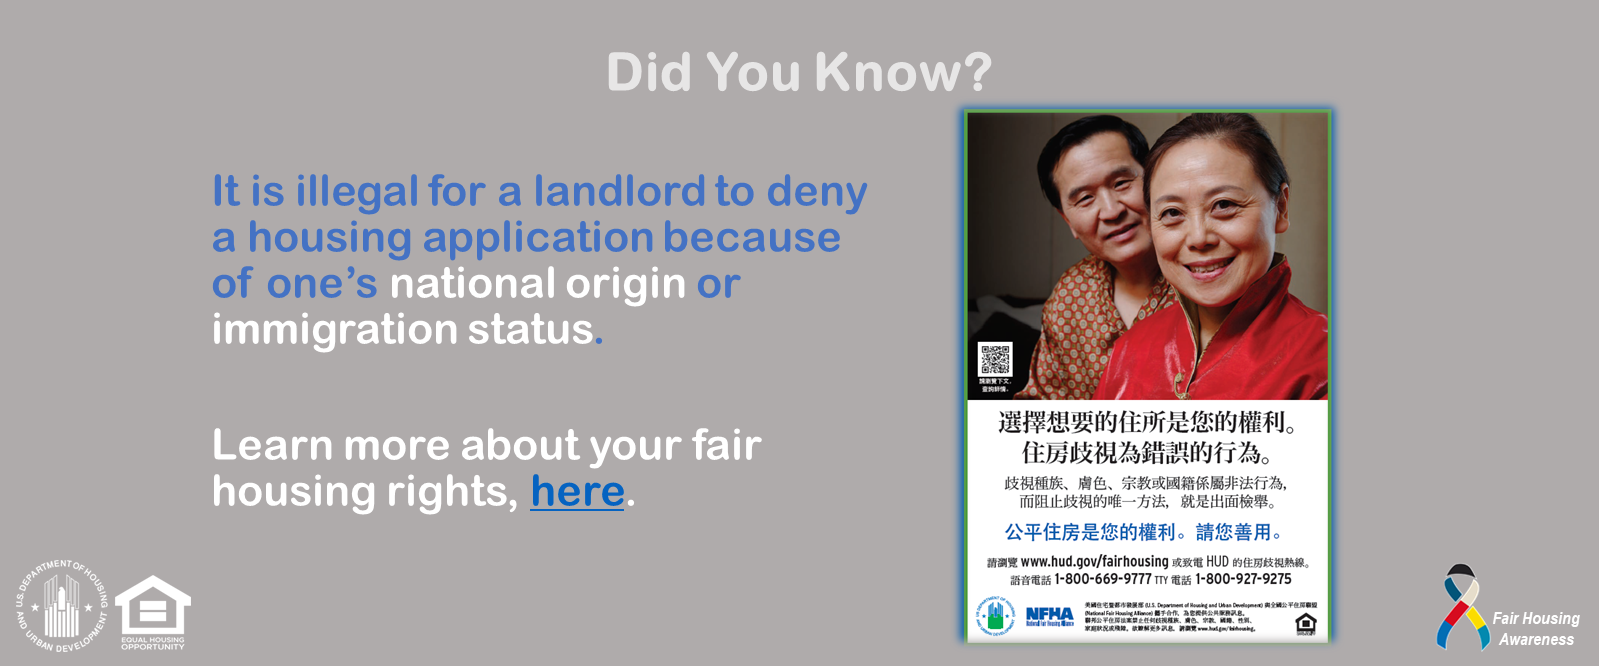 [It is illegal for a landlord to deny a housing application because of one's national origin or immigration status.]. HUD Photo